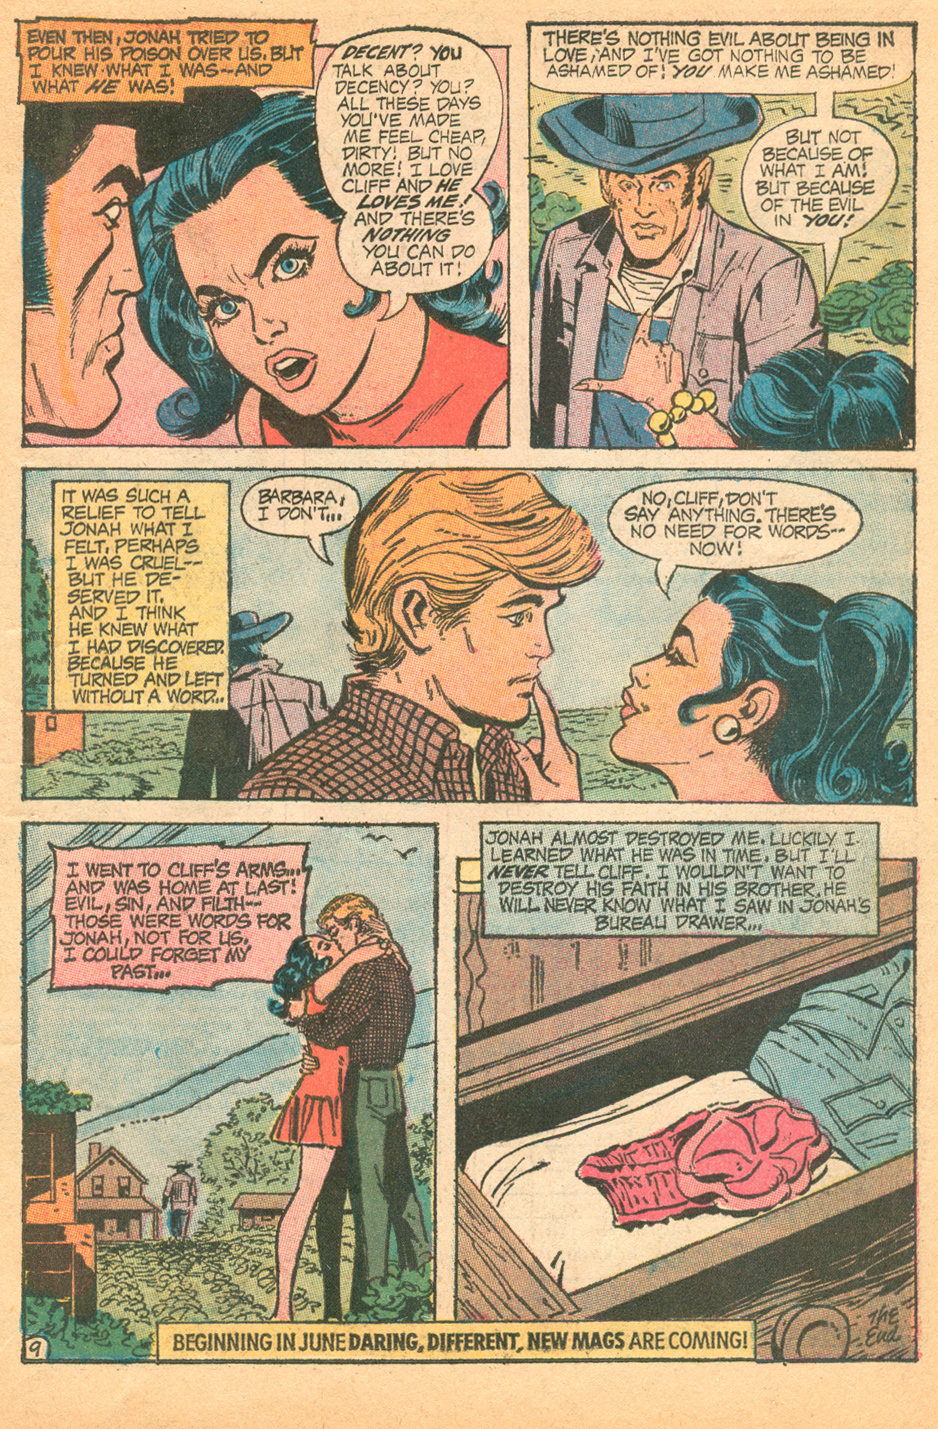 Cover by Bob Oksner Falling in Love #124 (July 1971) romance comic book sequential crush